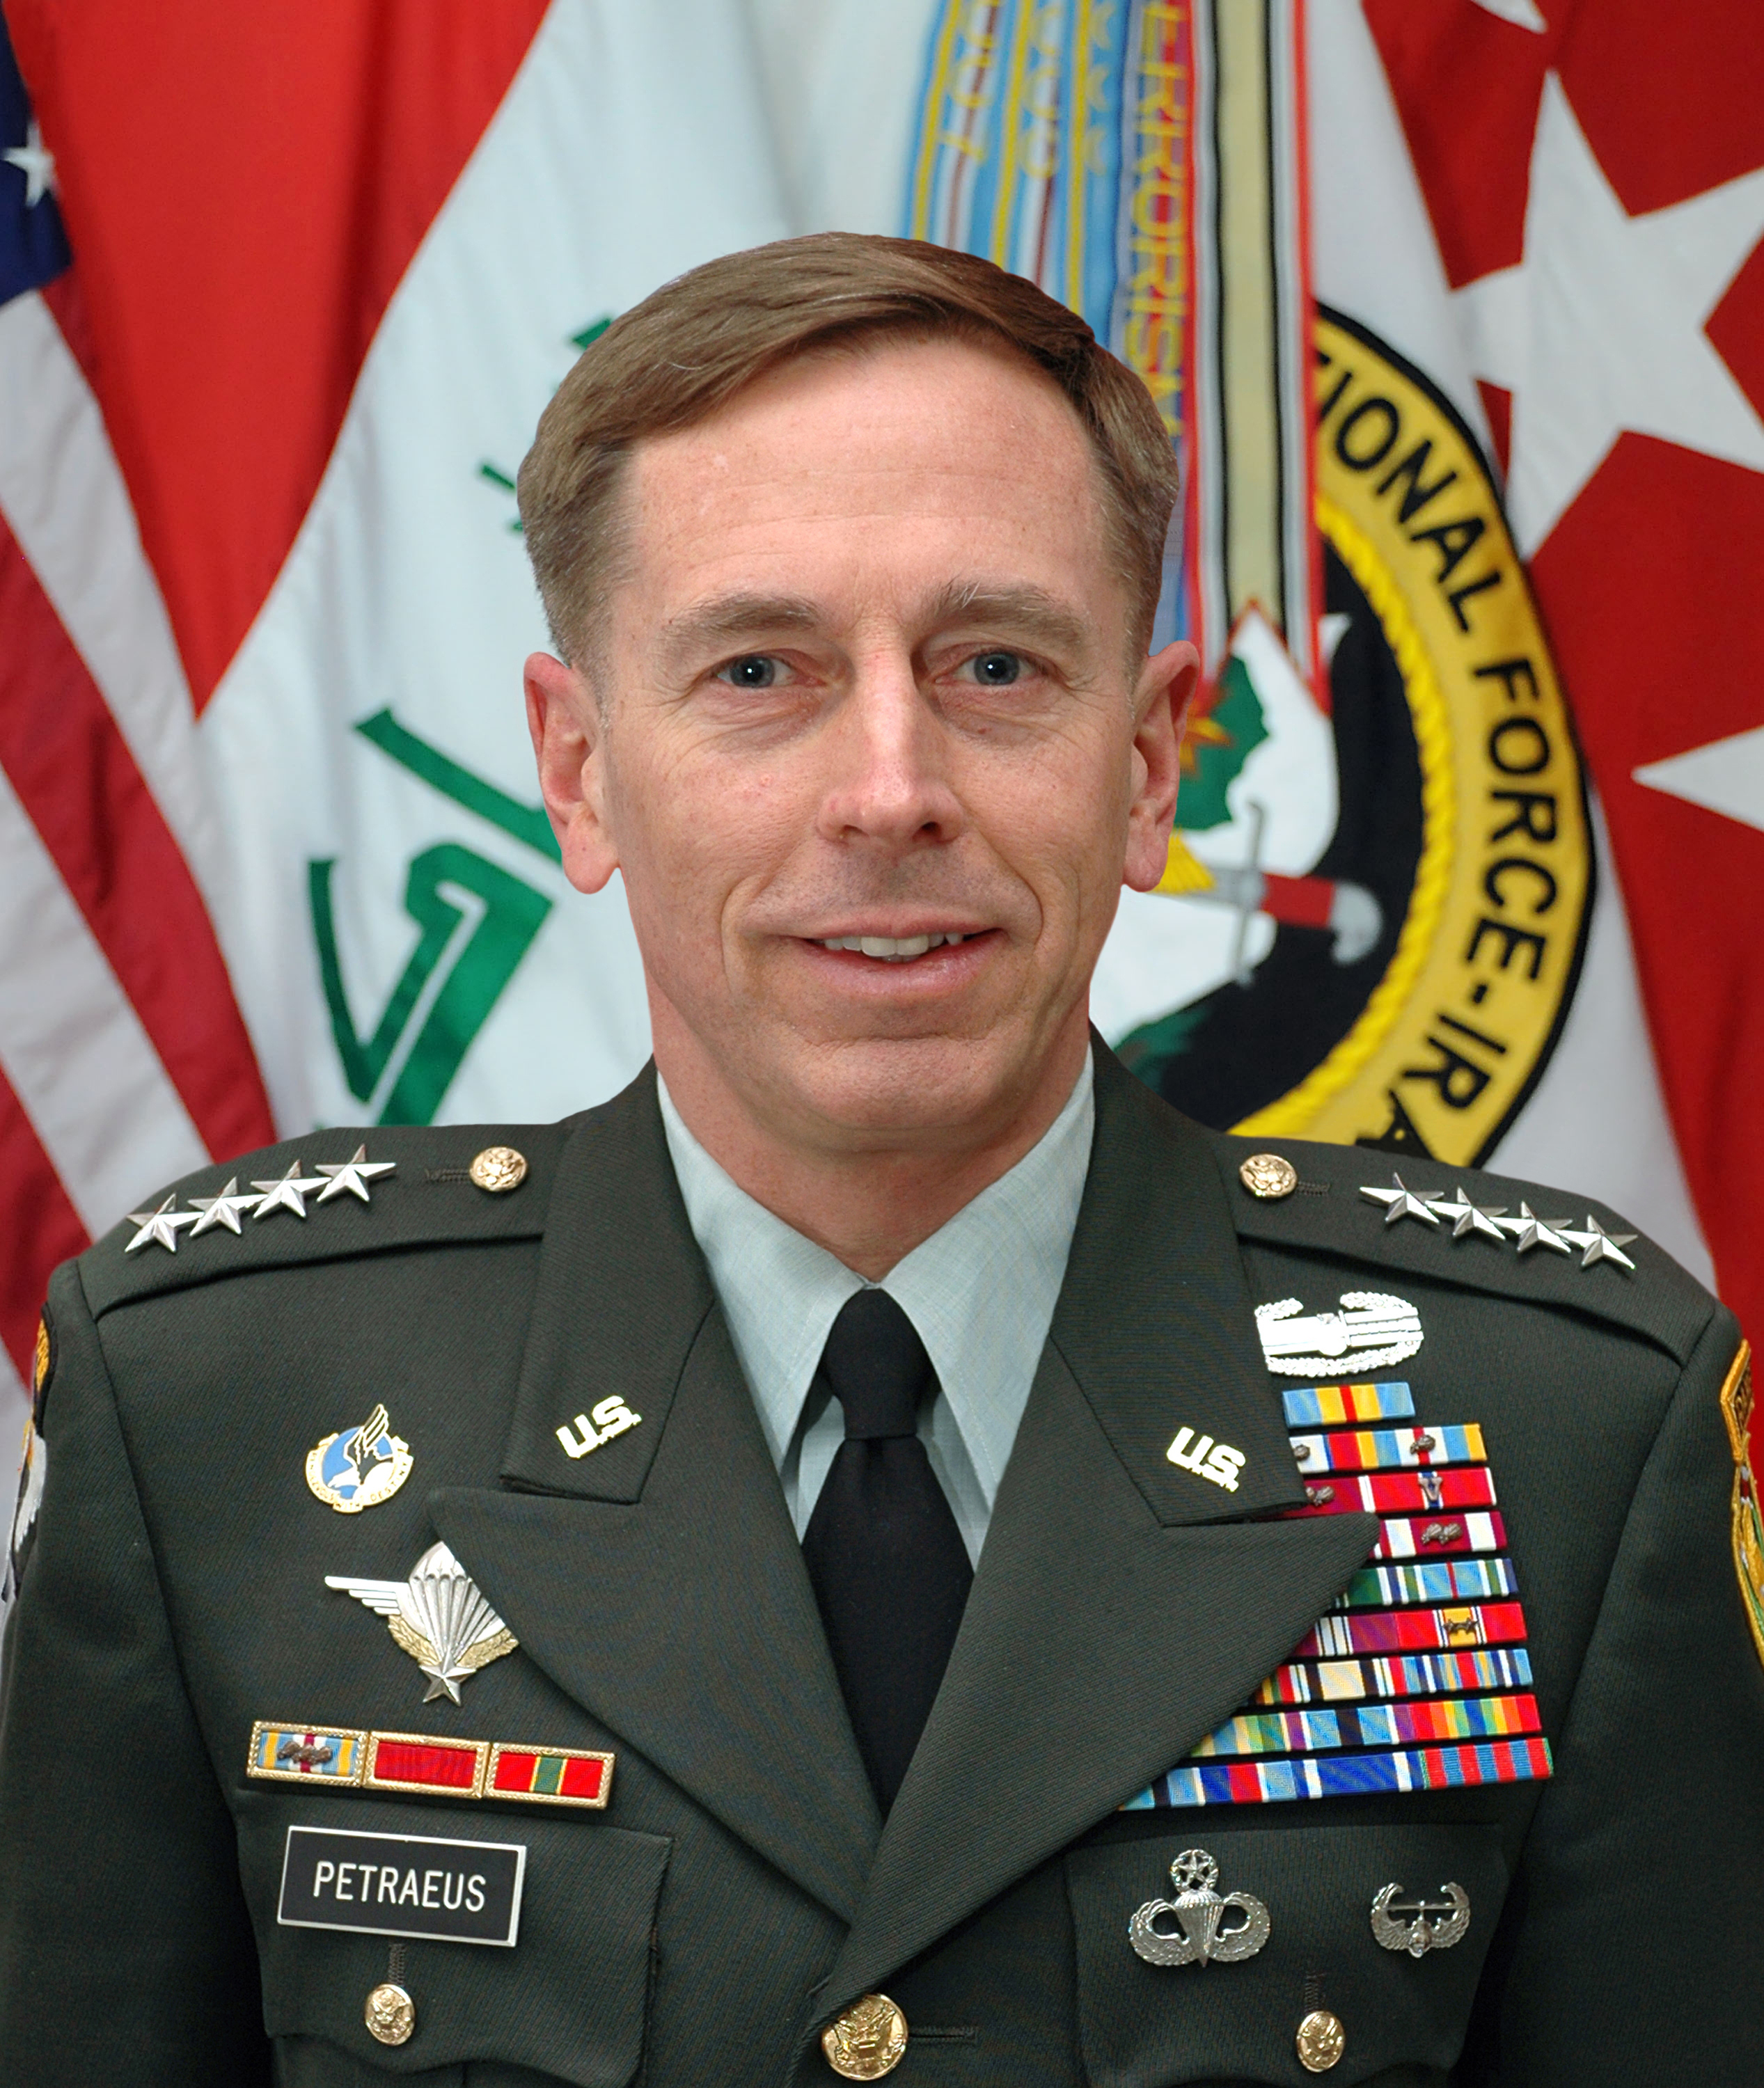 The 65-year old son of father Sixtus Petraeus and mother Miriam Howell, 178 cm tall David Petraeus in 2018 photo